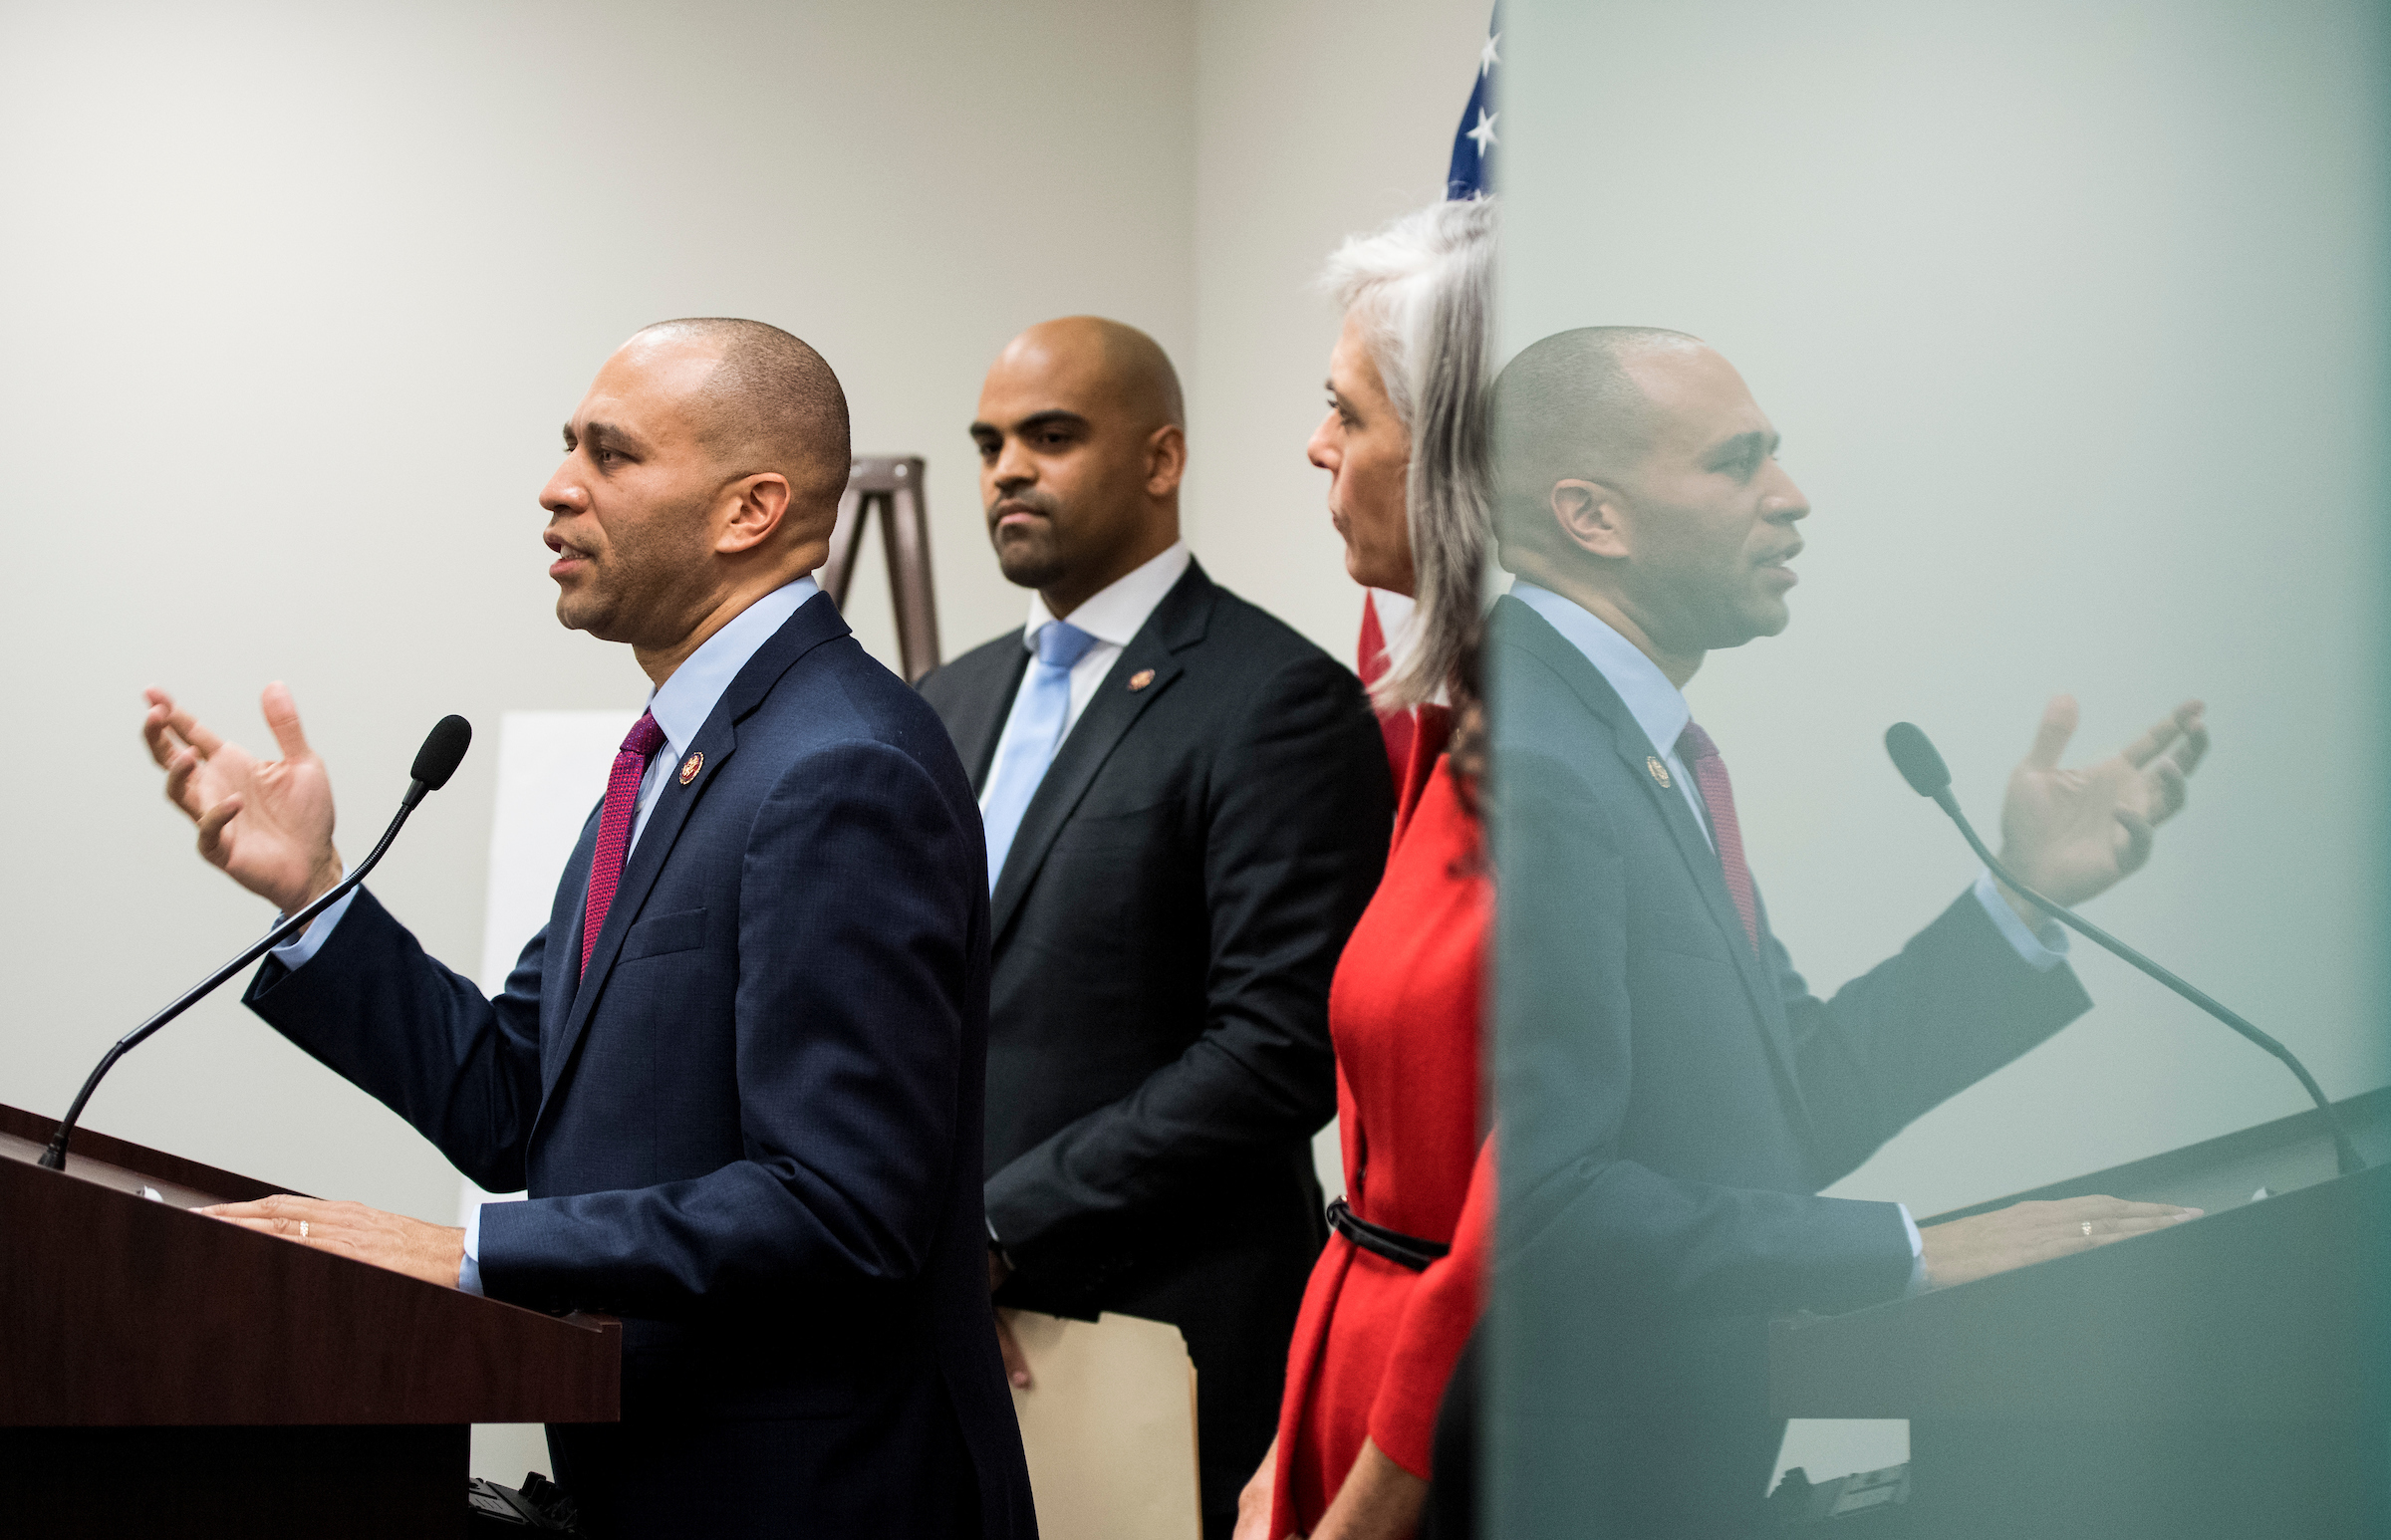 UNITED STATES - JANUARY 9: From left, Democratic Caucus Chair Hakeem Jeffries, D-N.Y., Rep. Colin Allred, D-Texas, and Democratic Caucus Vice Chair Katherine Clark, D-Mass., hold the weekly caucus press conference in the Capitol on Wed. Jan. 9, 2018. (Photo By Bill Clark/CQ Roll Call)